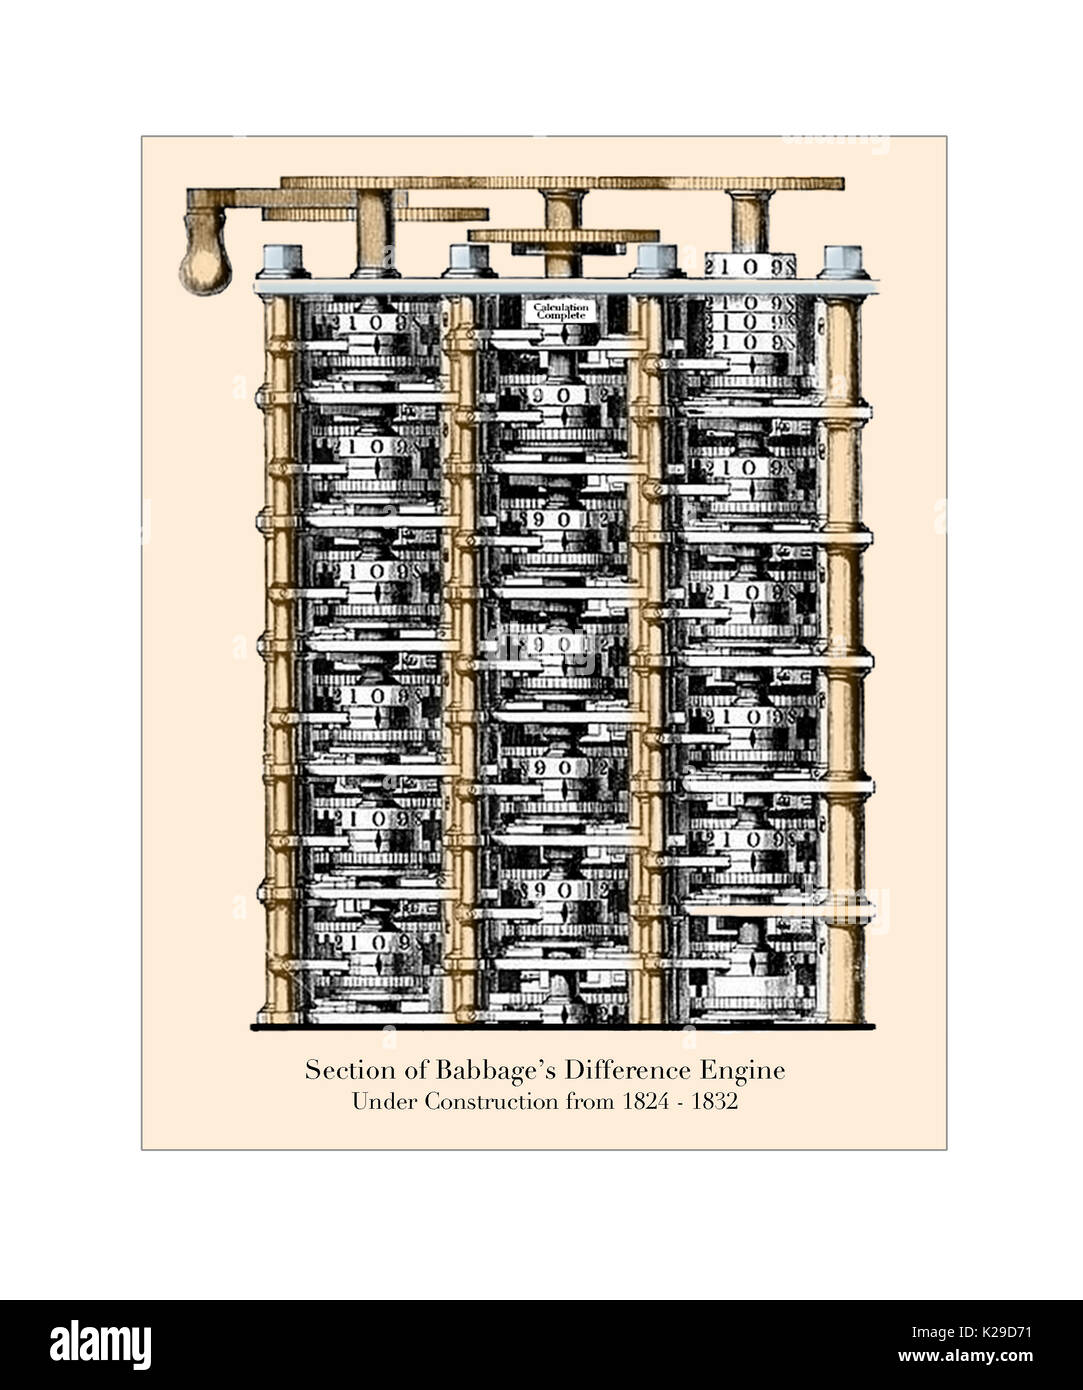 Section of Babbage's Difference Engine - Stock Image